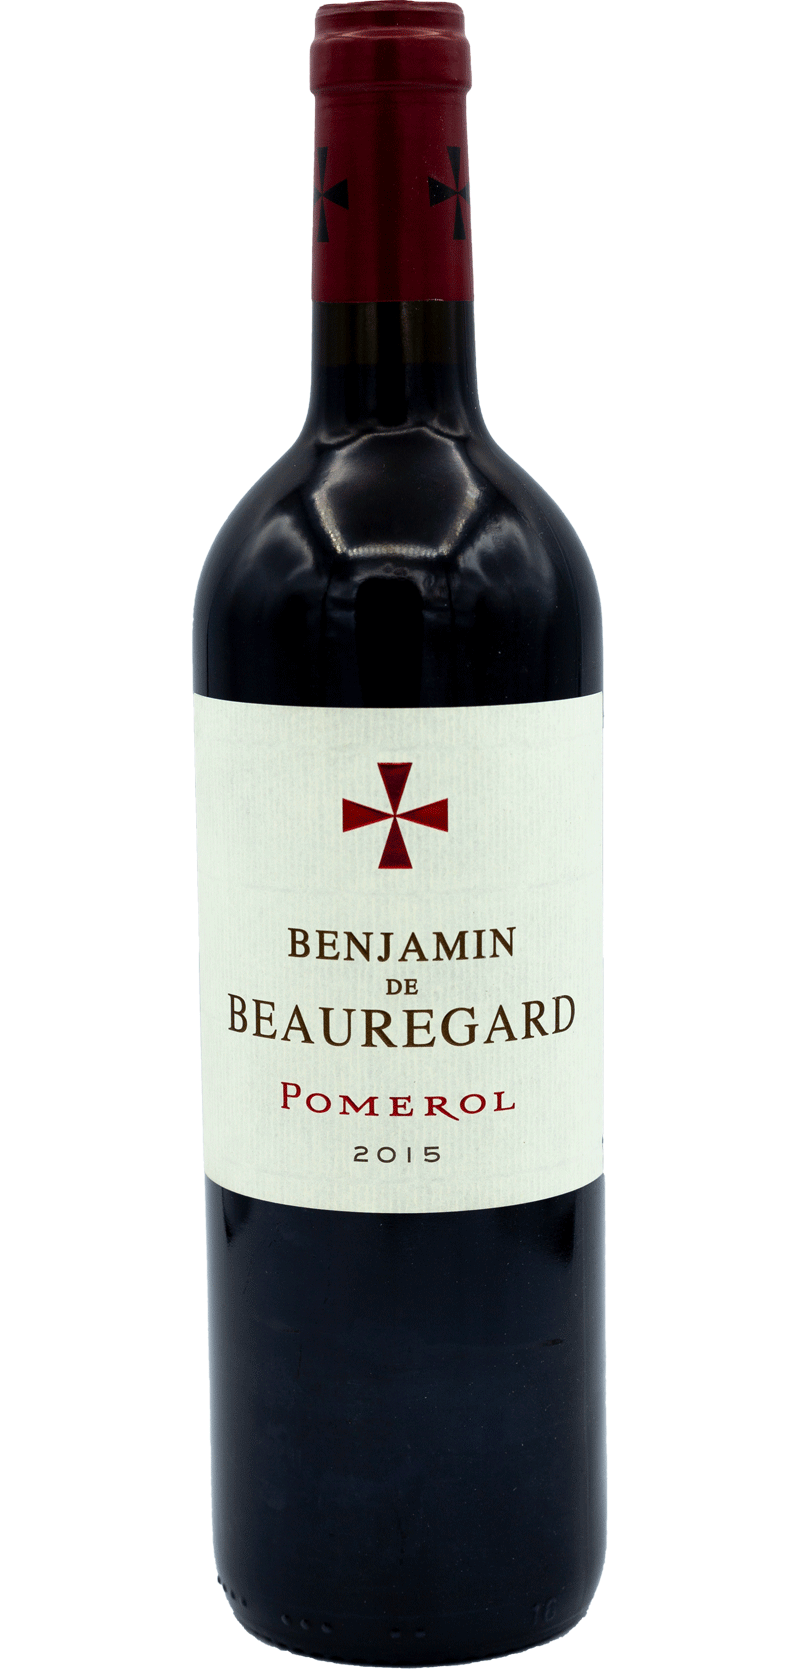 Benjamin de Beauregard - Pomerol - 2015 - Red Wine